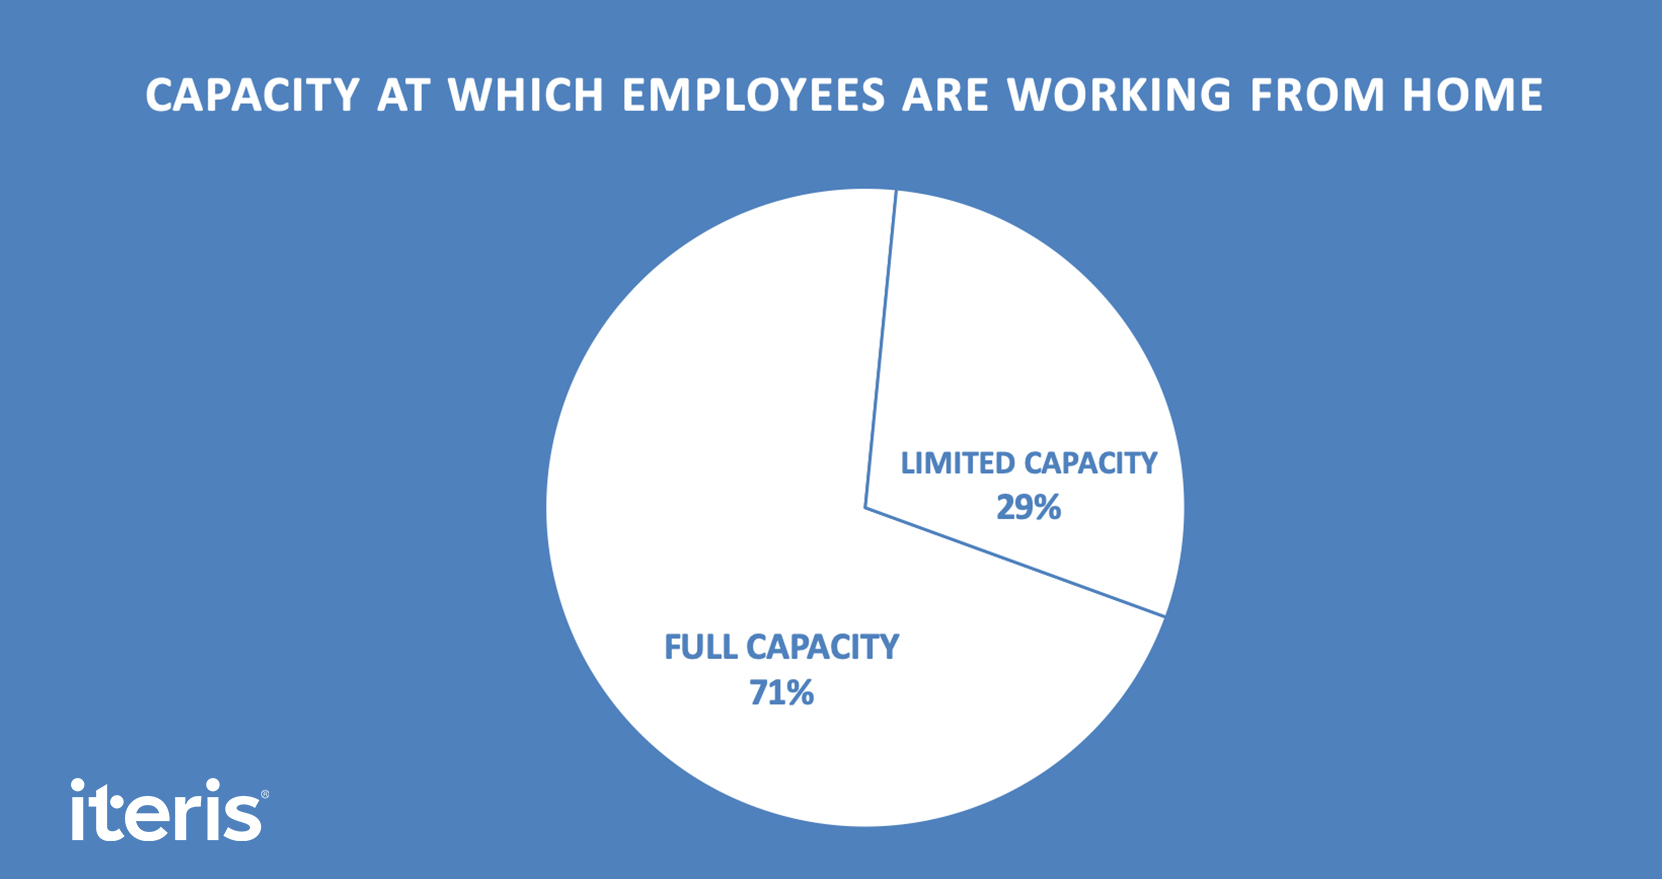 Capacity at which employees are working from home